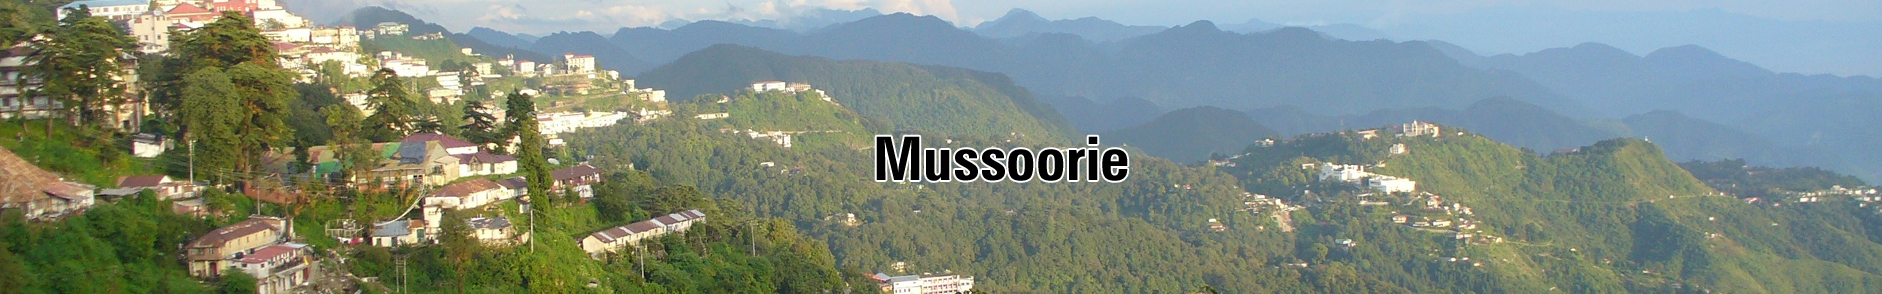 Mussoorie Hill Station Tour Packages